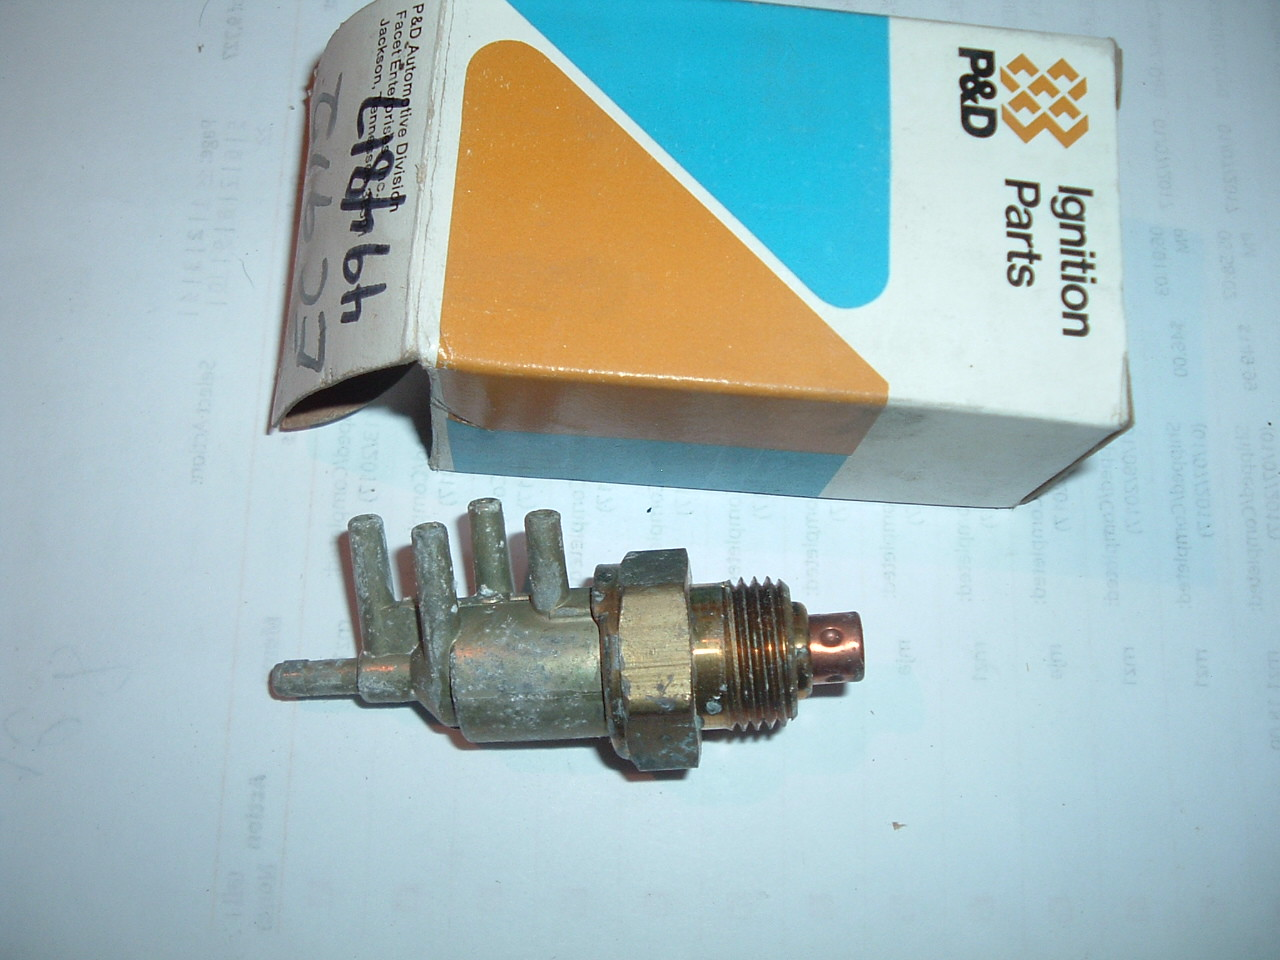 1974 pontiac ported vacuum switch 494817 (z 494817)